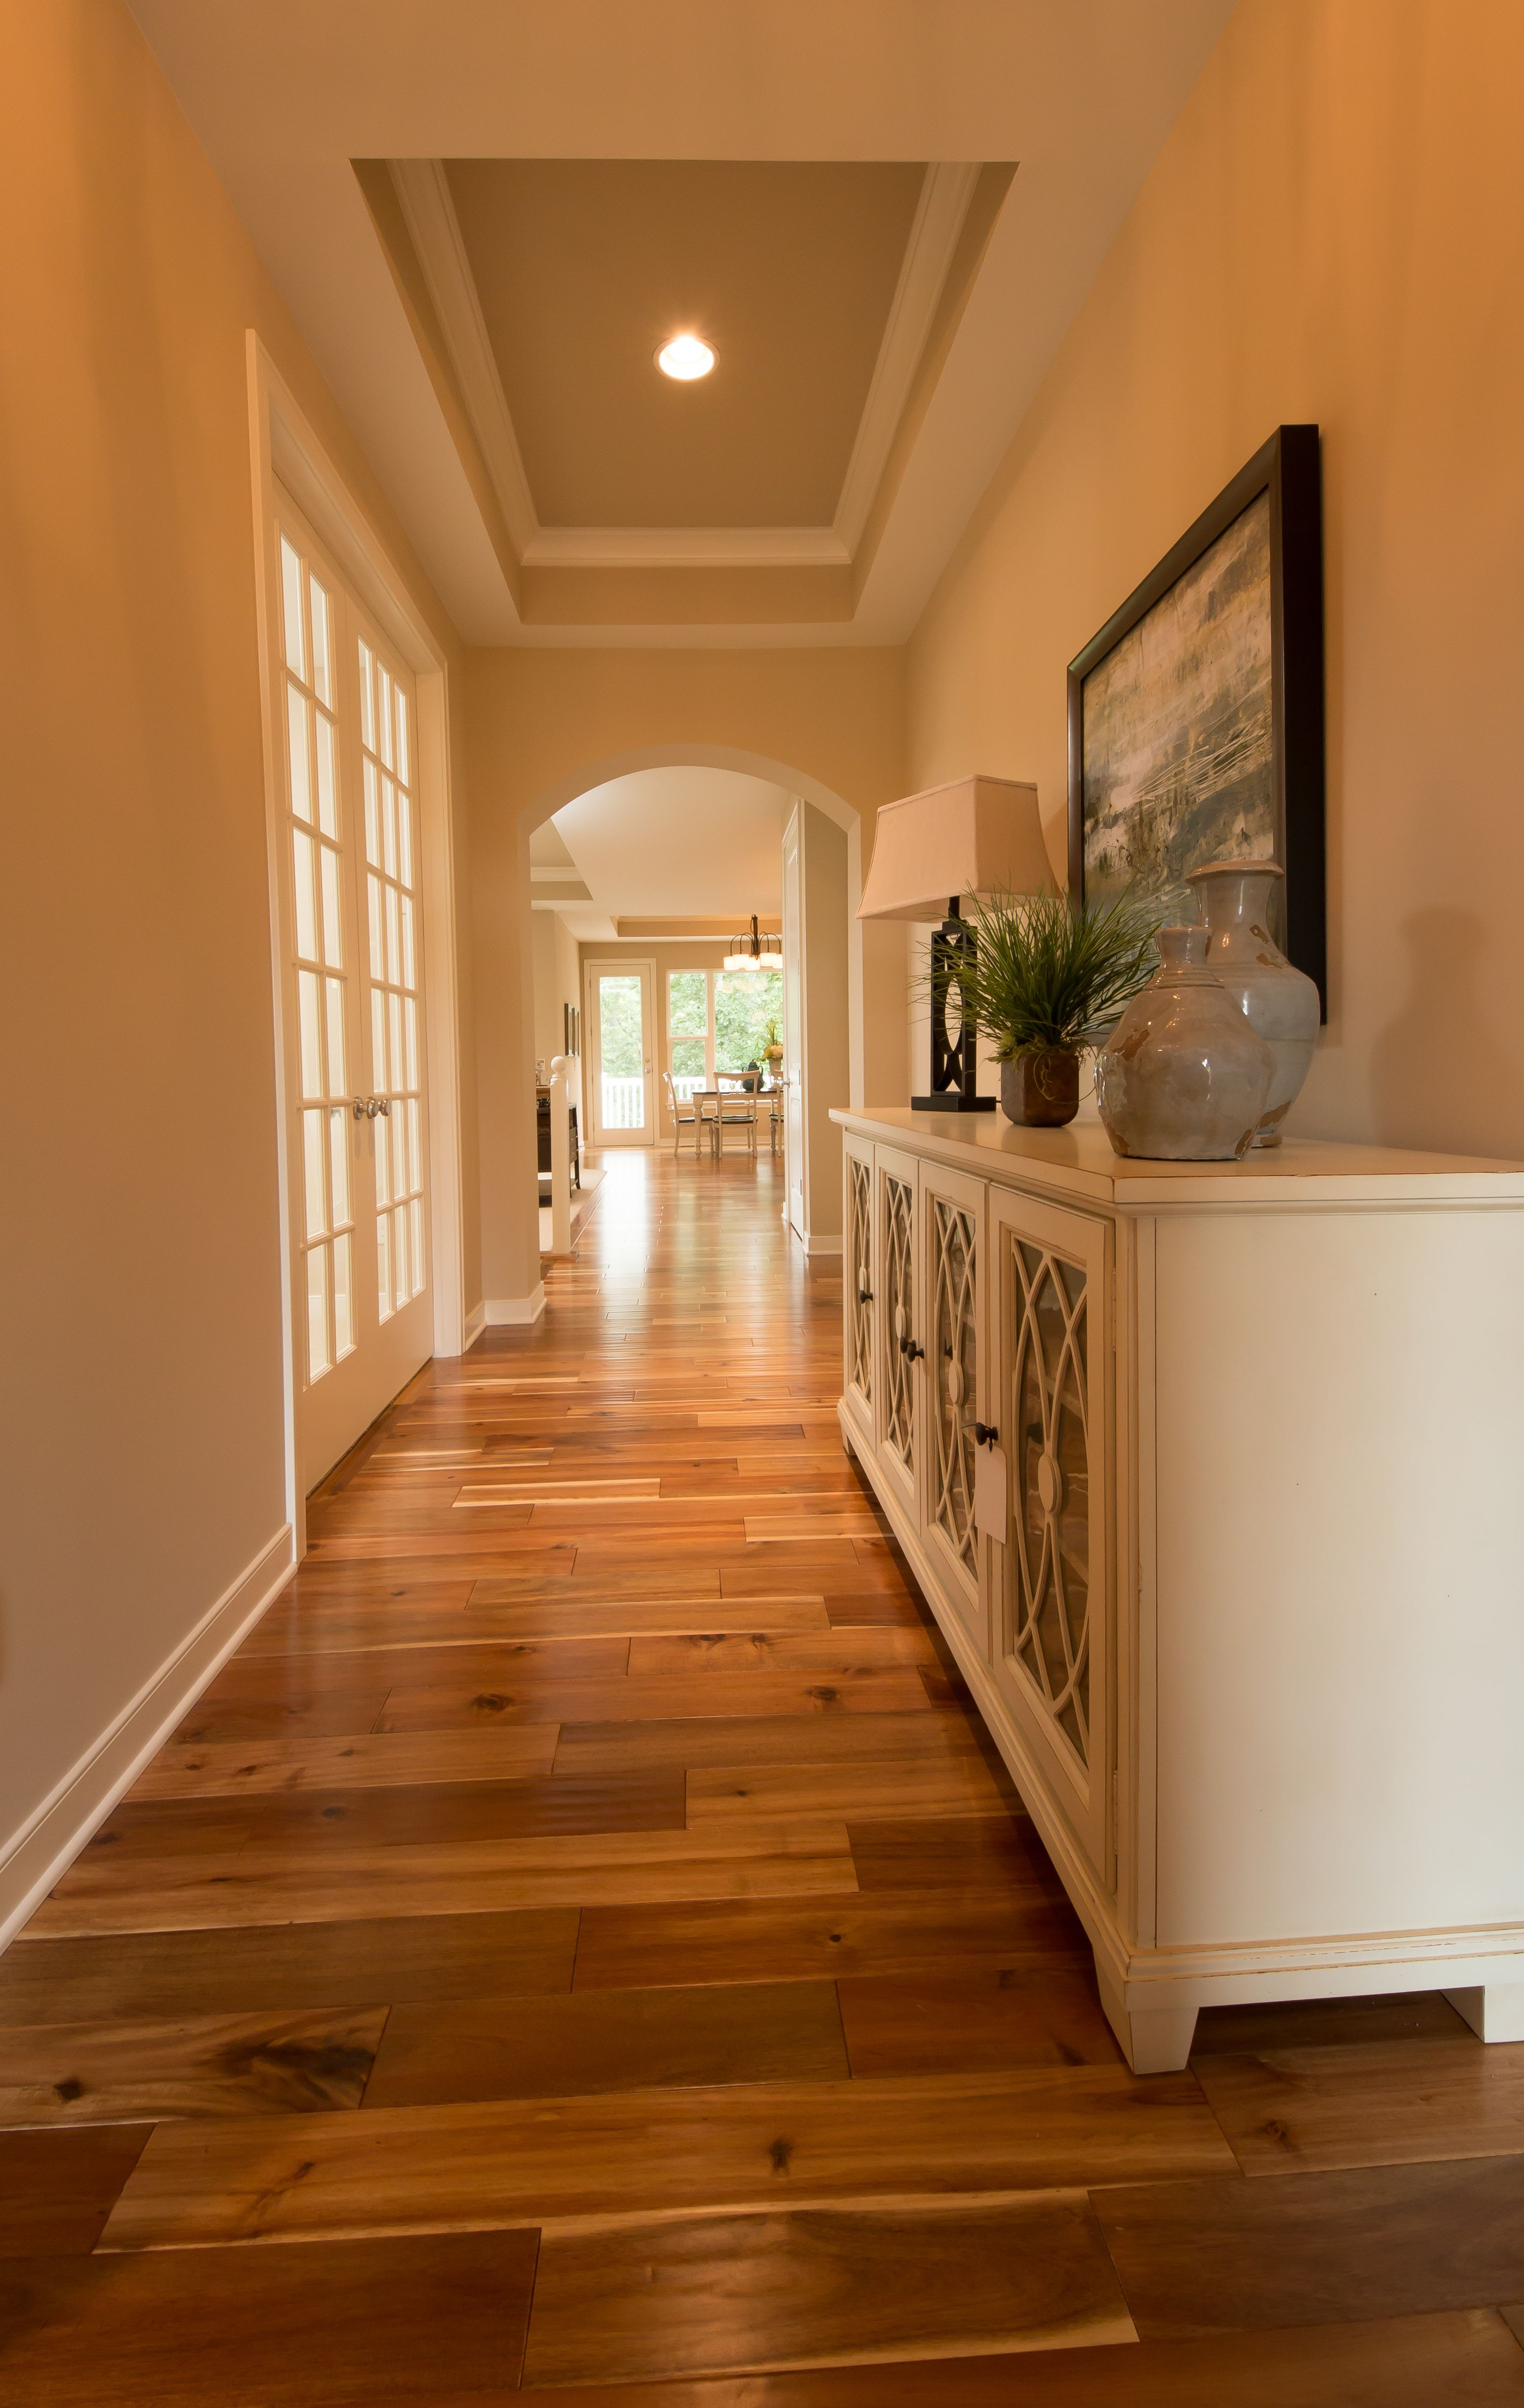 Acacia hardwood flooring, painted coffer ceiling with